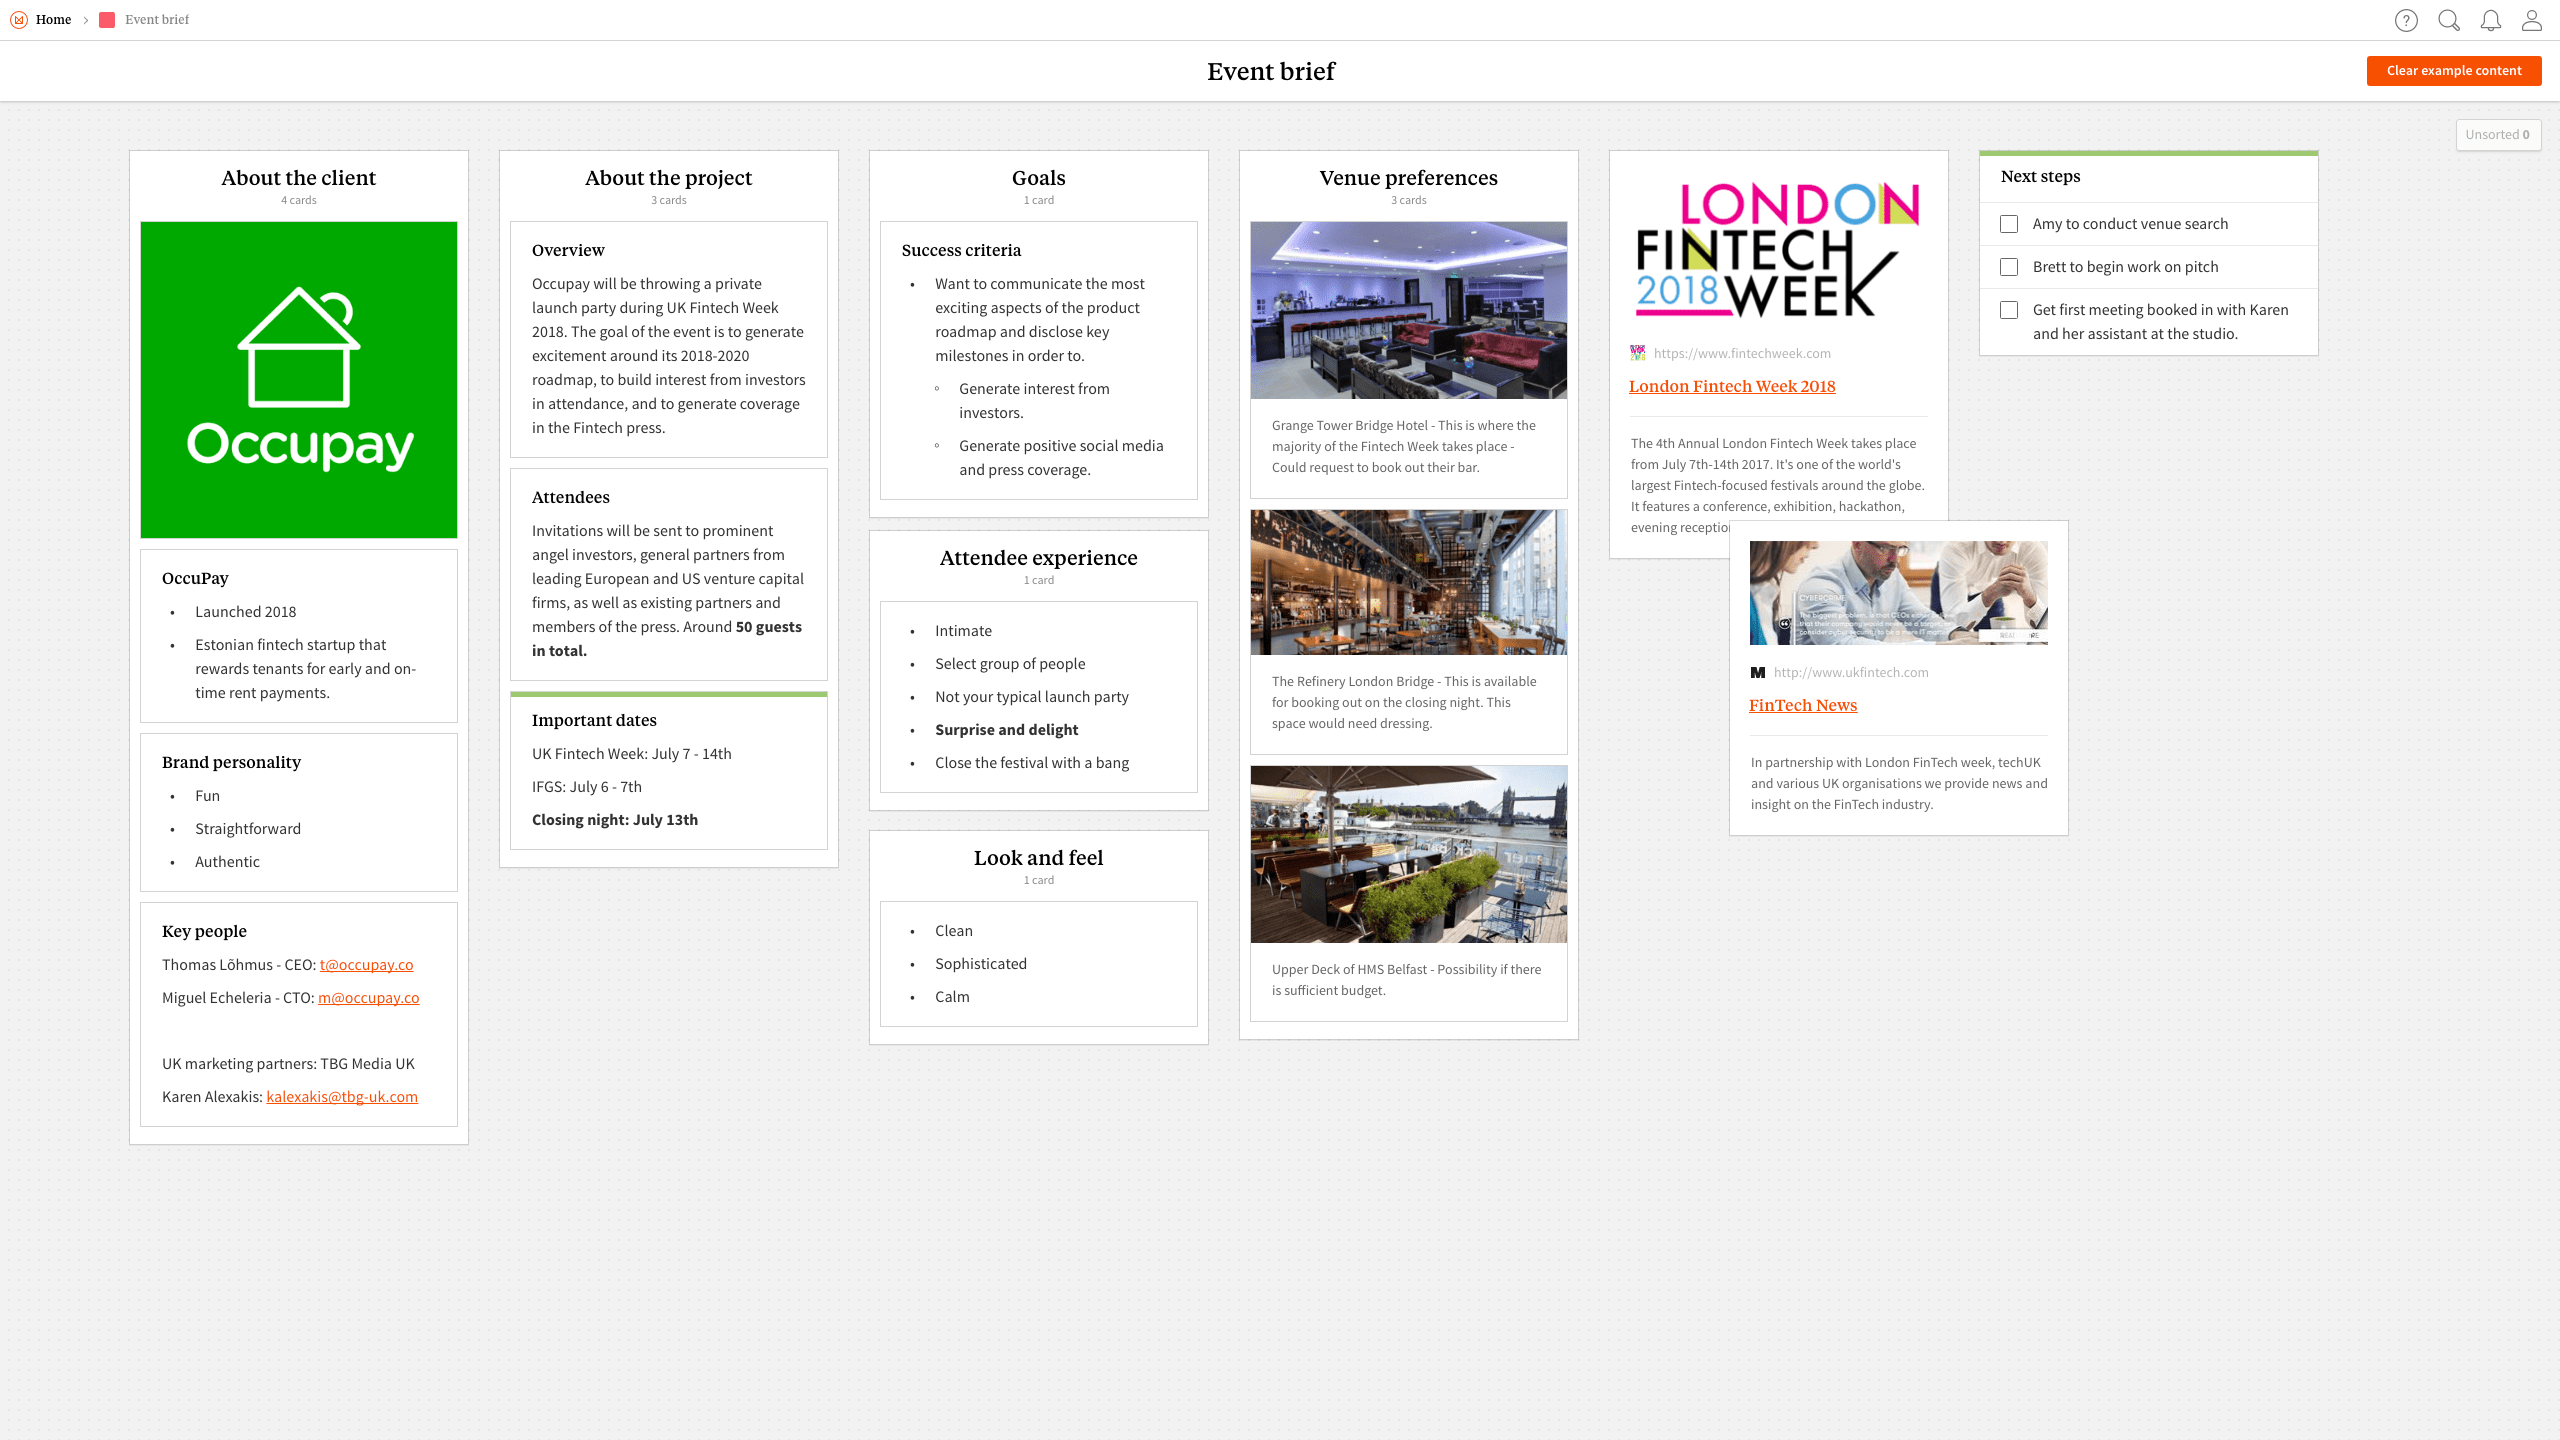 Completed Event Brief template in Milanote app